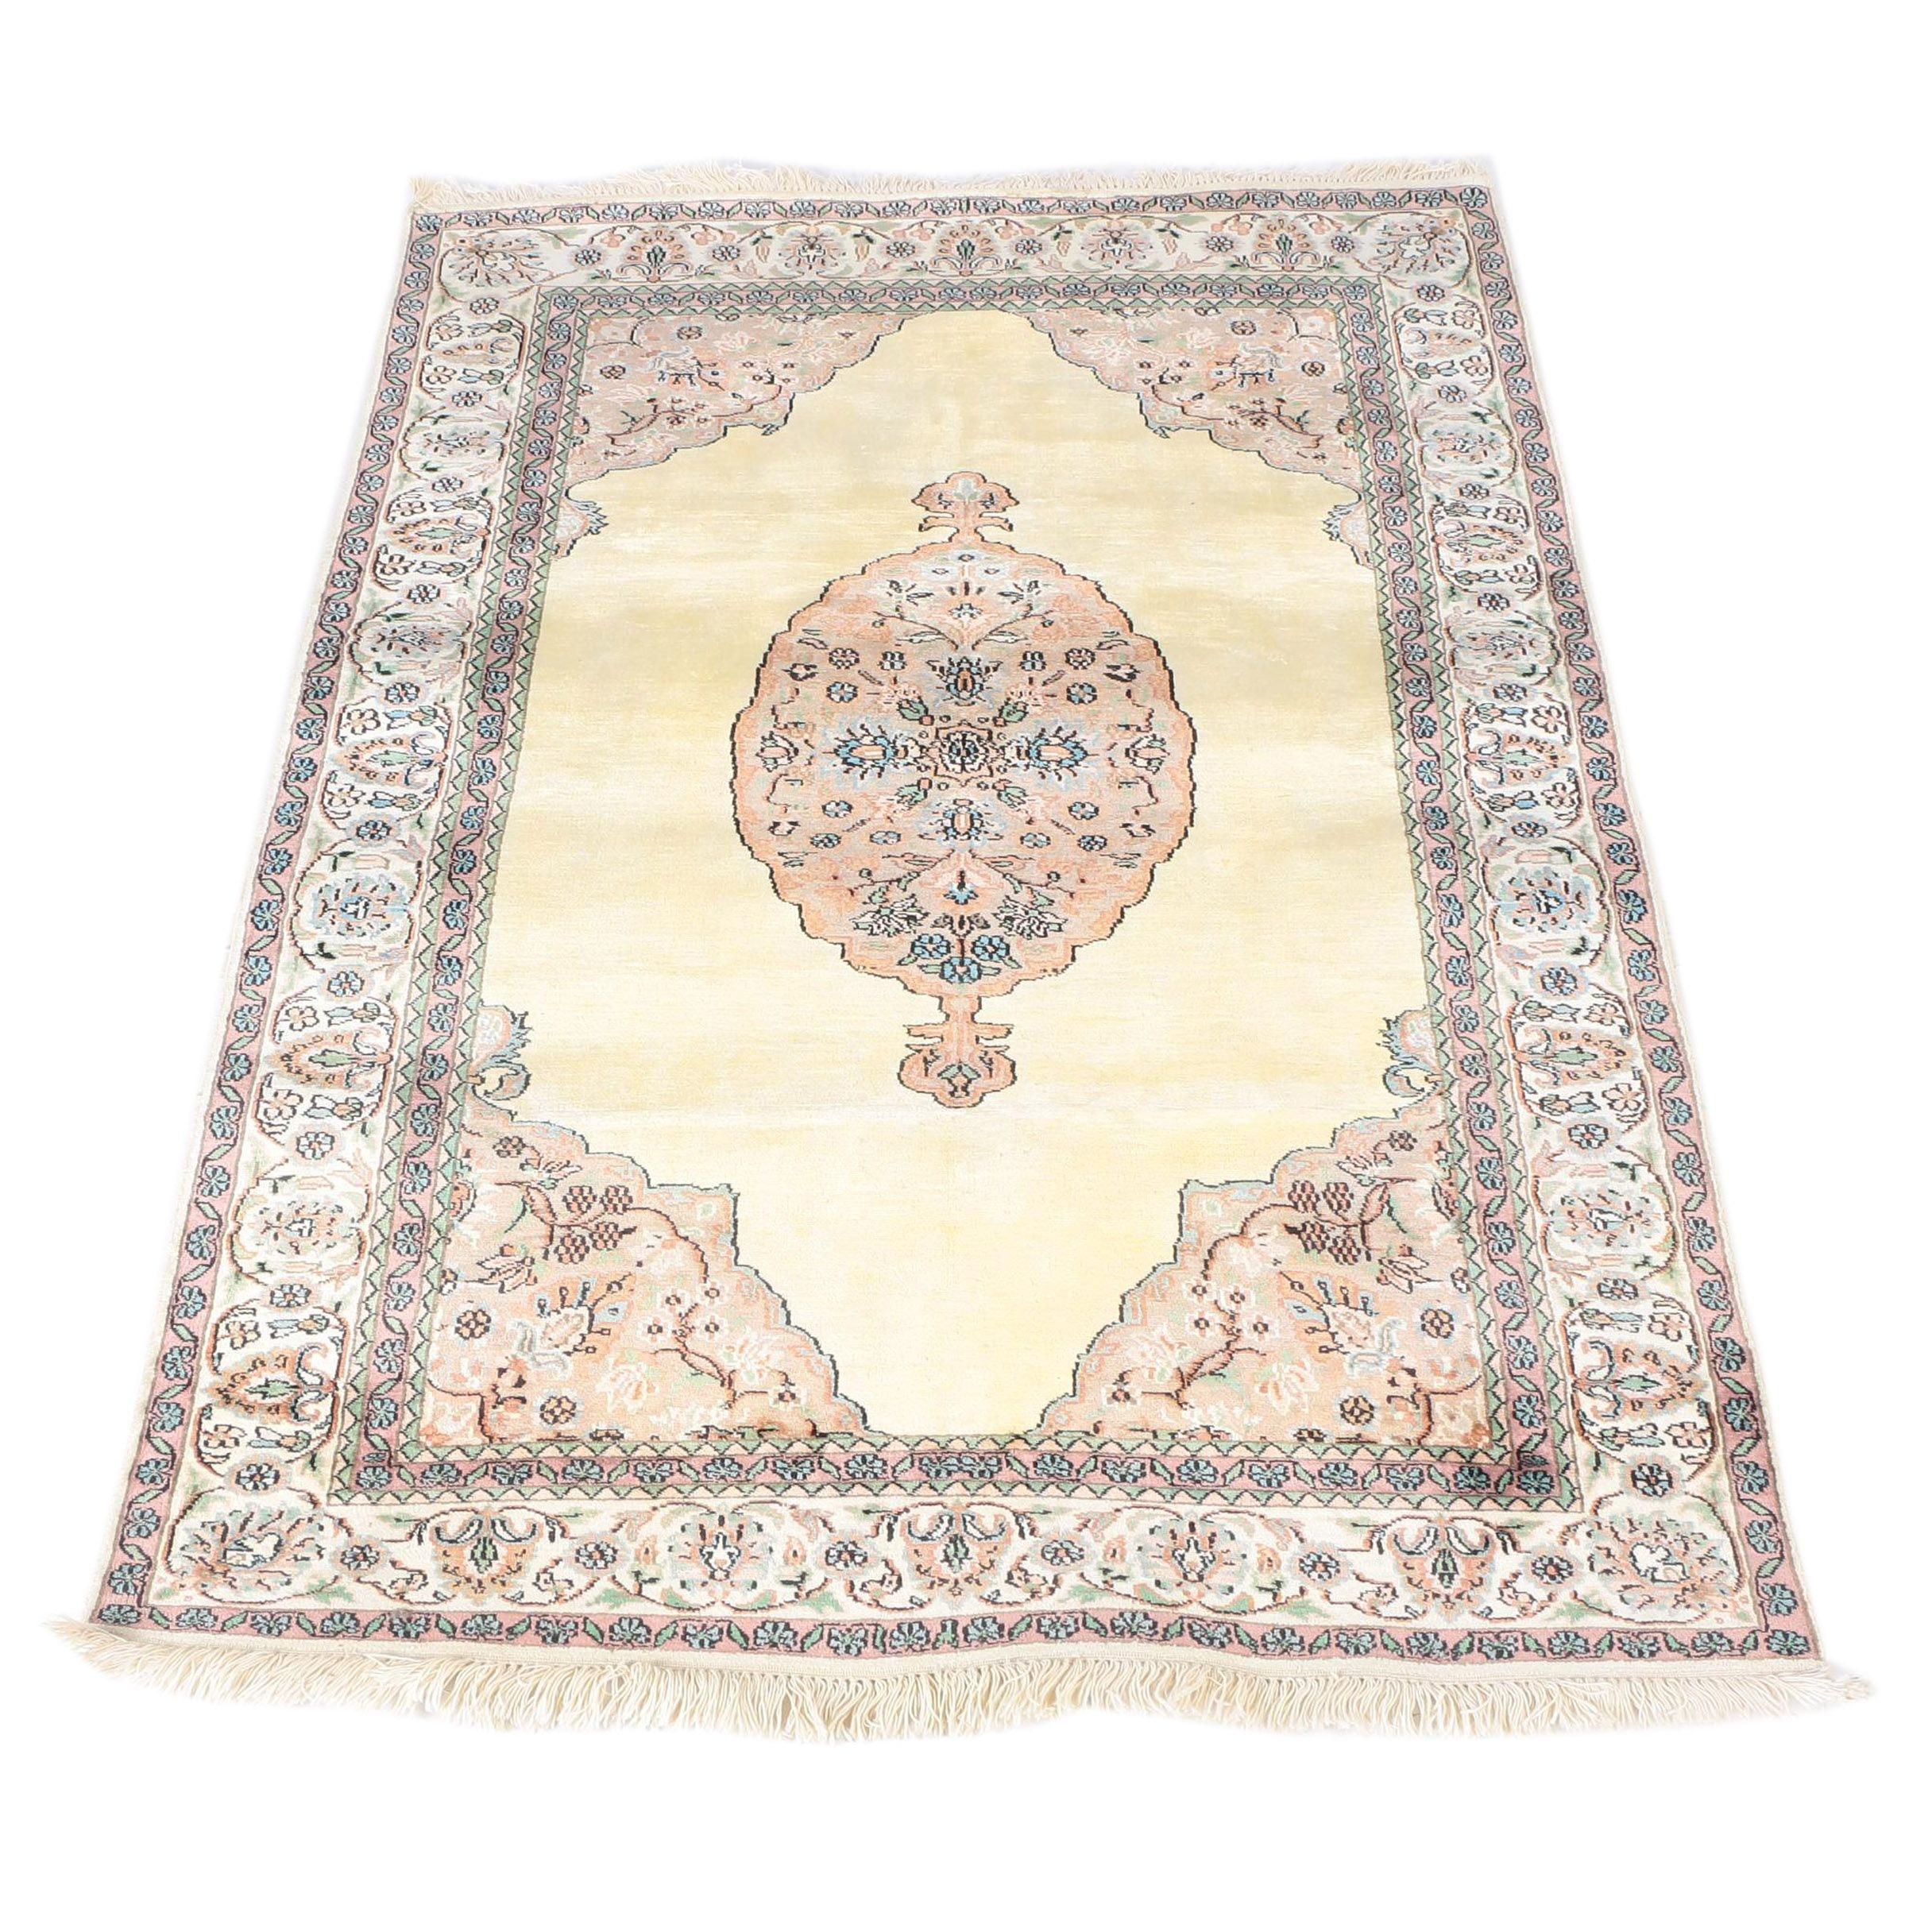 Hand-Knotted Indo-Persian Kerman Wool Area Rug